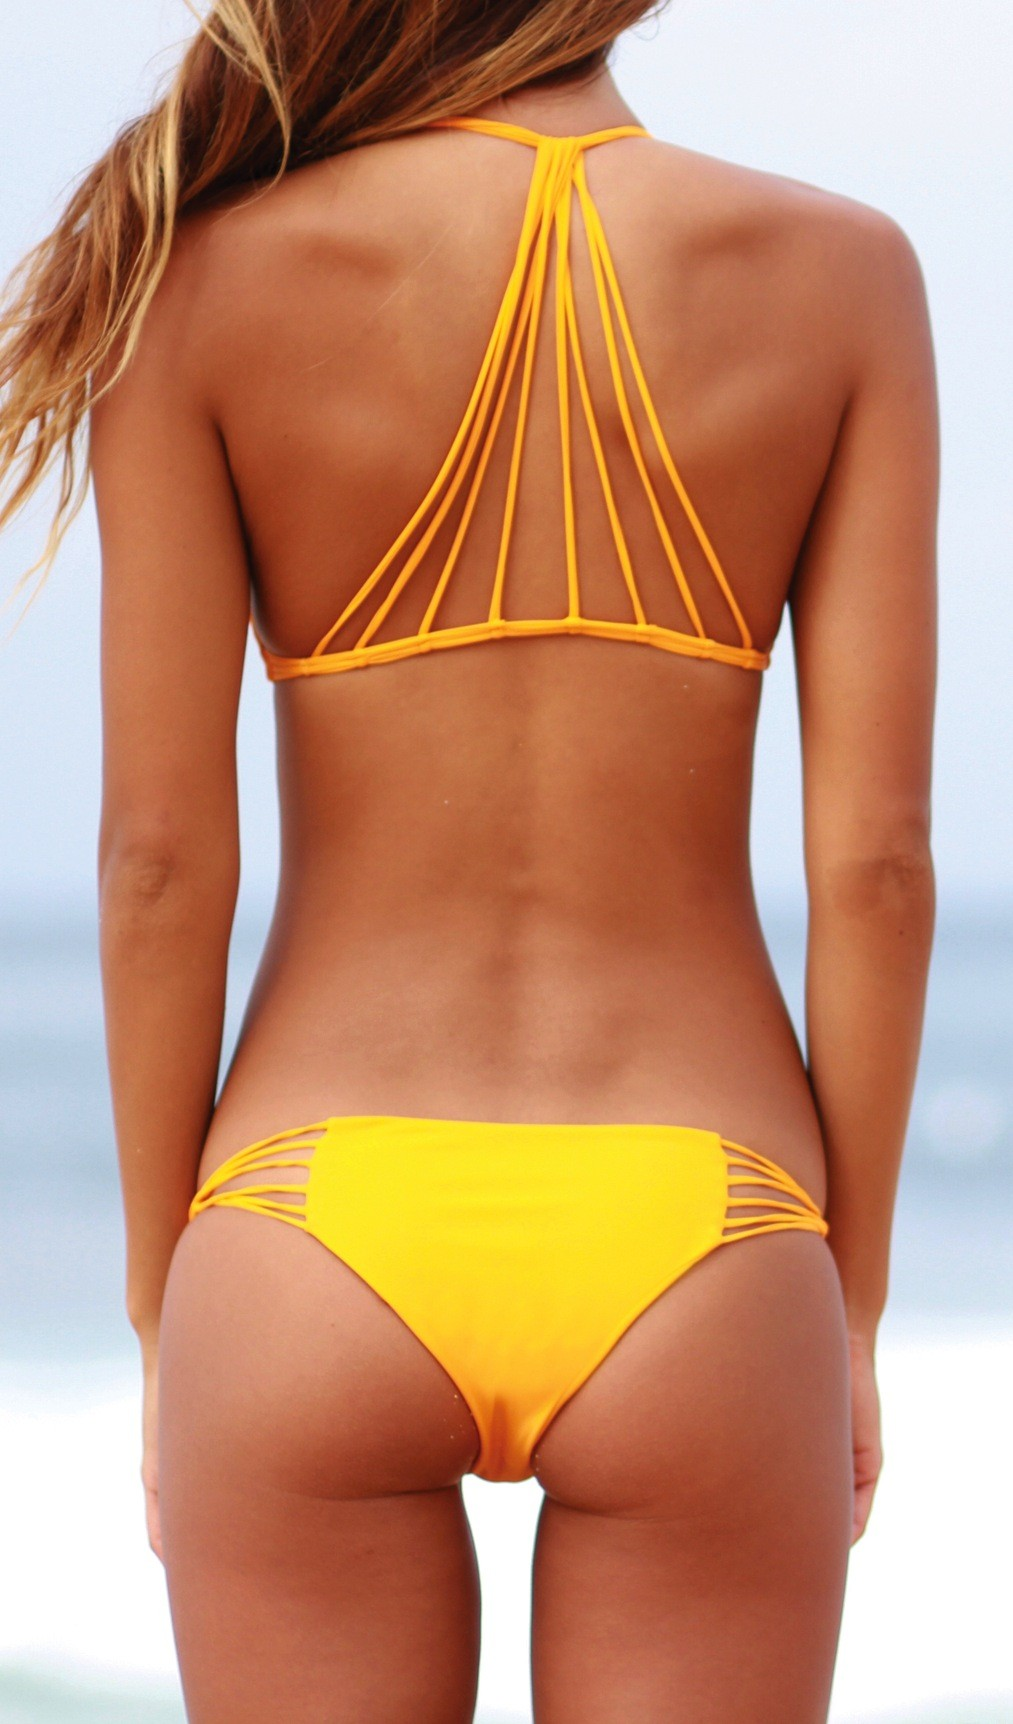 From sexy bikinis, high waisted bottoms, mesh one-pieces, bandeau tops, and flattering monokinis, you'll find the newest swimwear right here. Get free shipping on orders over $50, free returns and 50% off your 1st order!